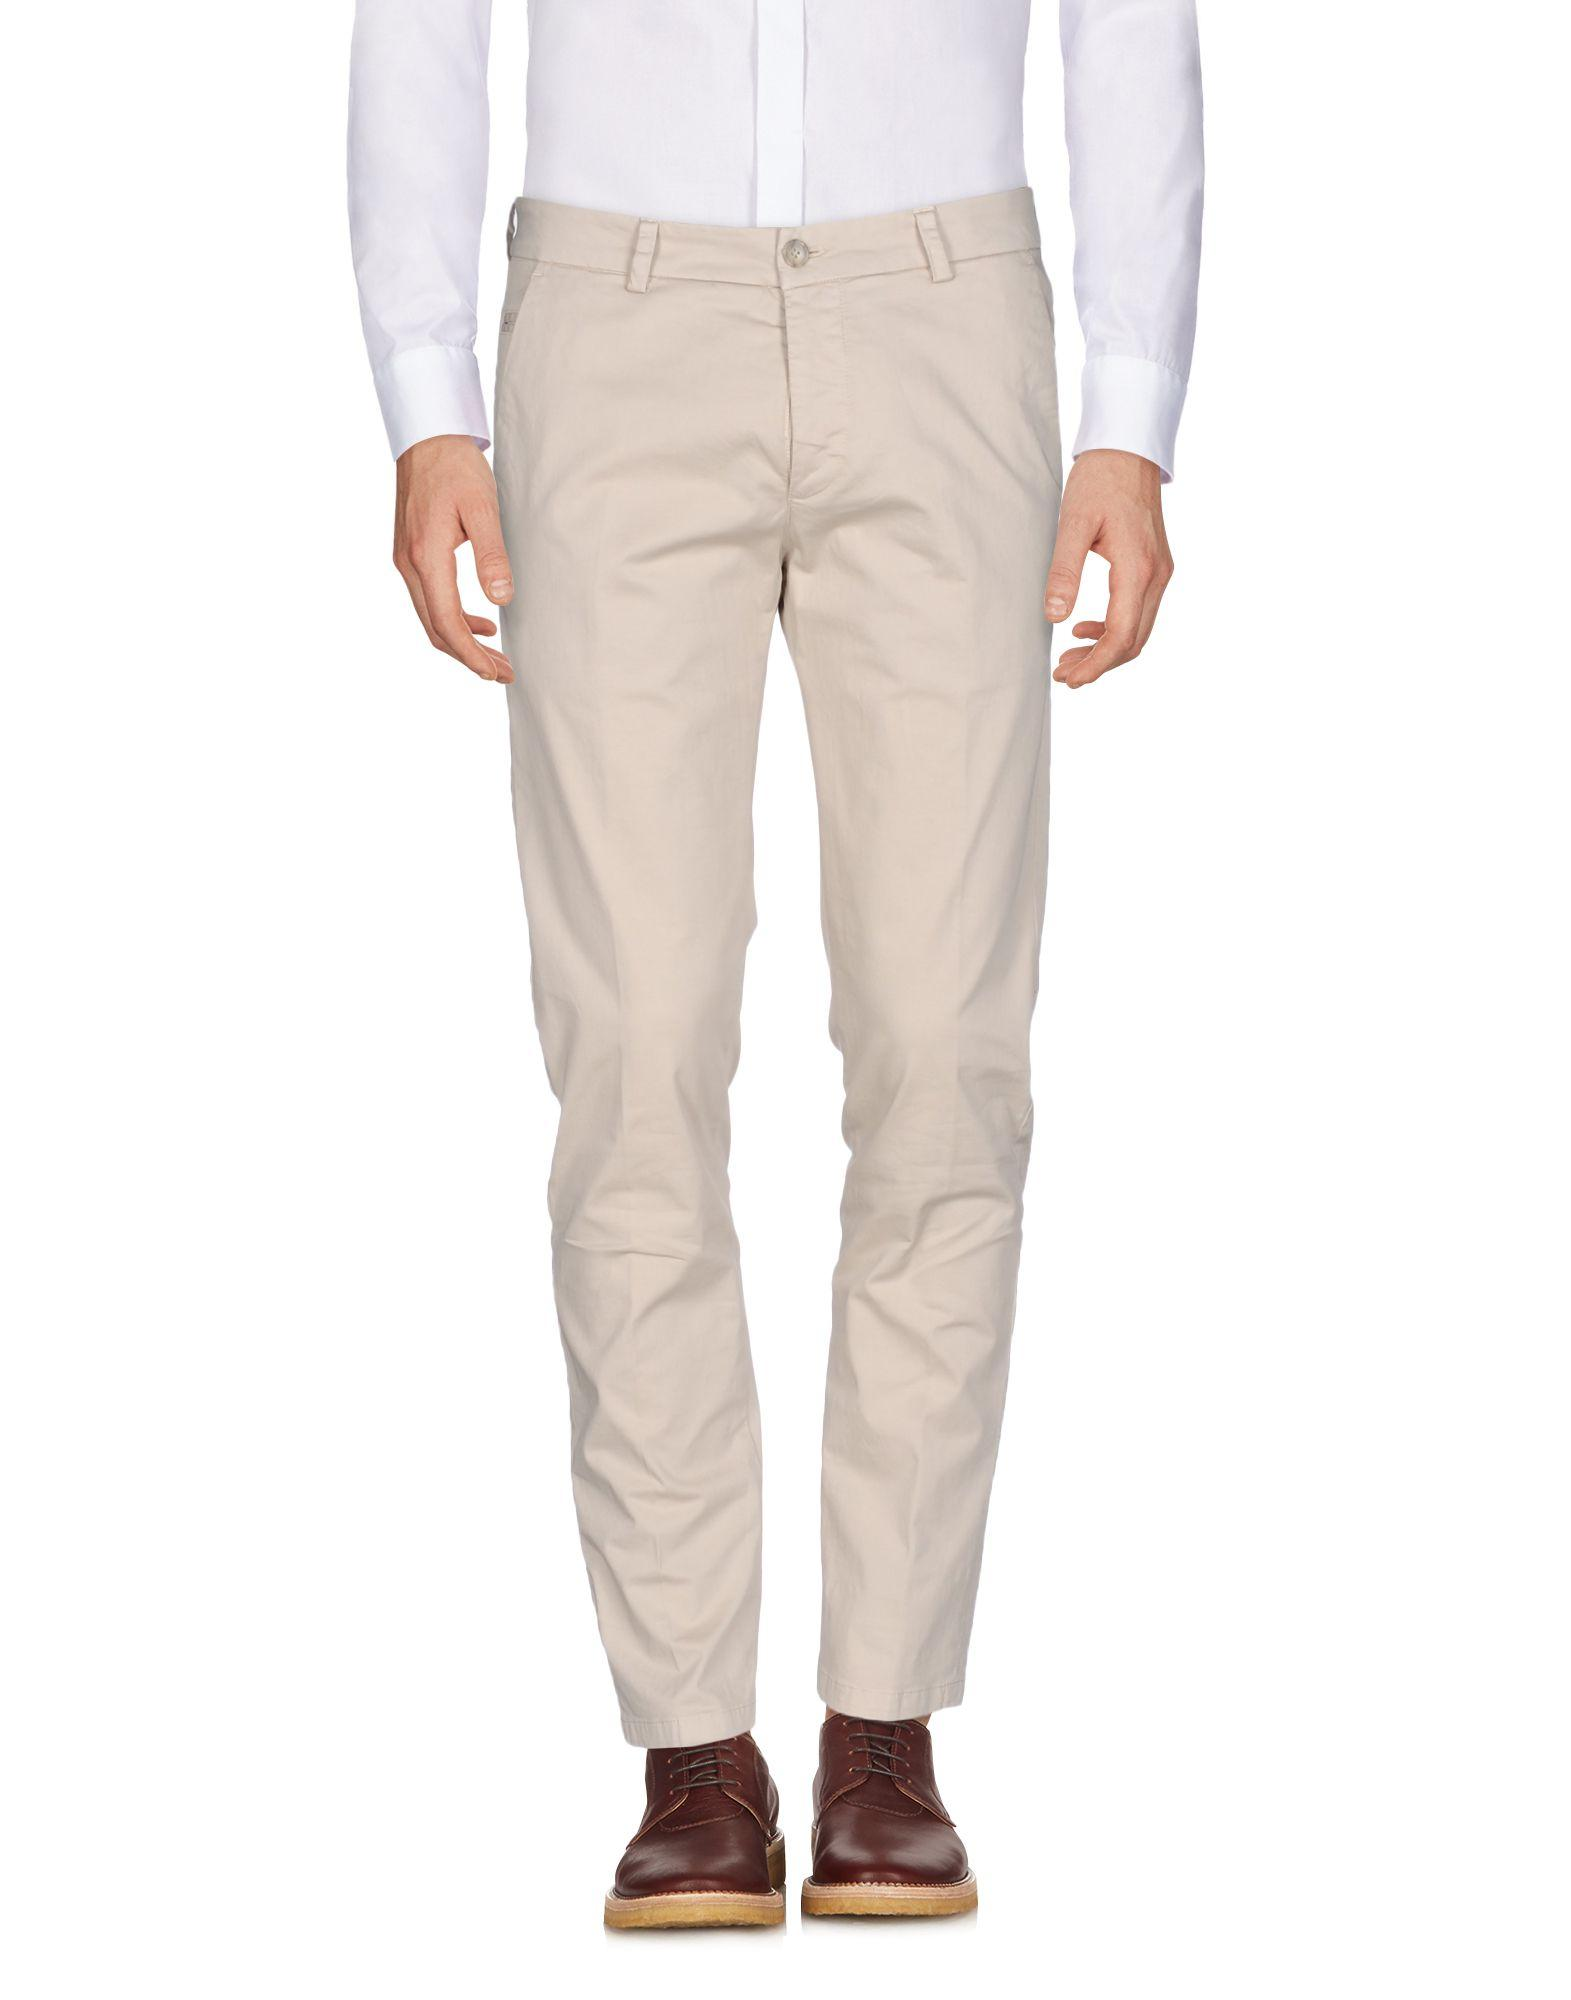 Low Brand Casual Pants In Beige